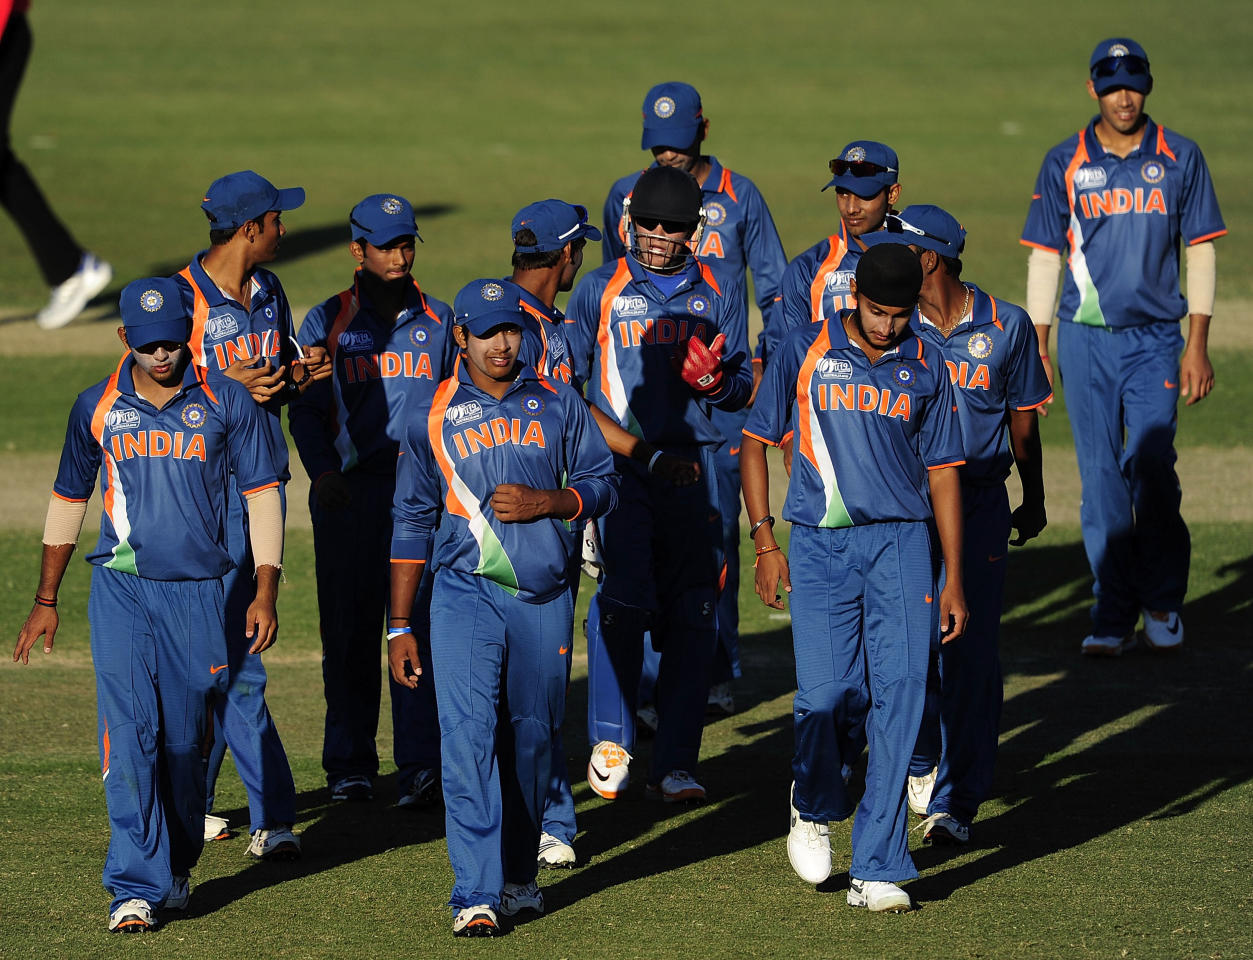 TOWNSVILLE, AUSTRALIA - AUGUST 12:  The Indian team walks off the field after losing the ICC U19 Cricket World Cup 2012 match between the West Indies and India at Tony Ireland Stadium on August 12, 2012 in Townsville, Australia.  (Photo by Ian Hitchcock-ICC/Getty Images)